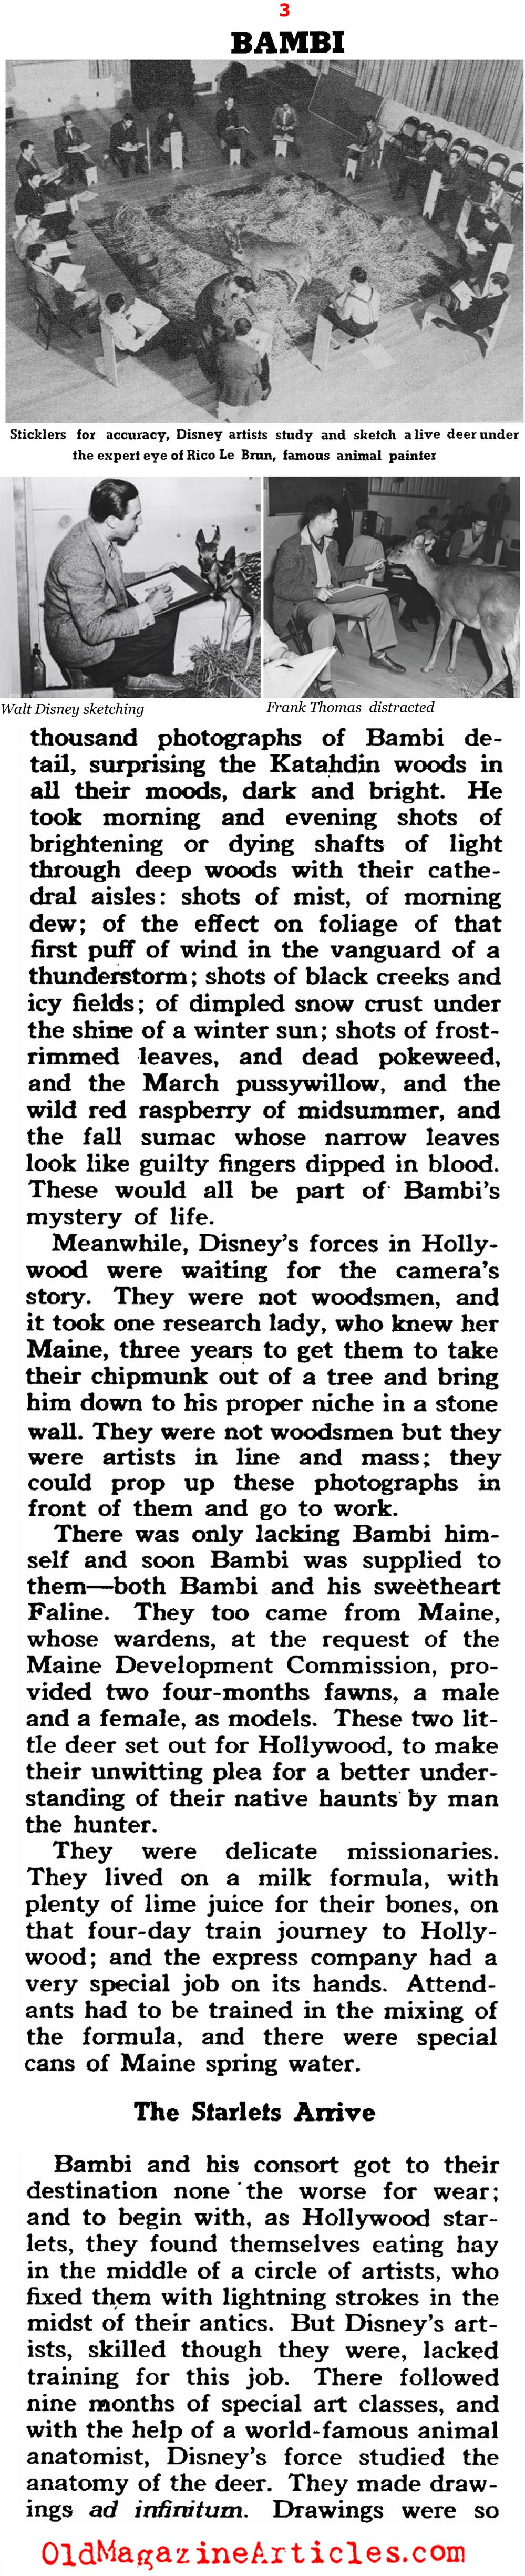 Walt Disney's Artists and the Making of 'Bambi' (Collier's Magazine, 1942)